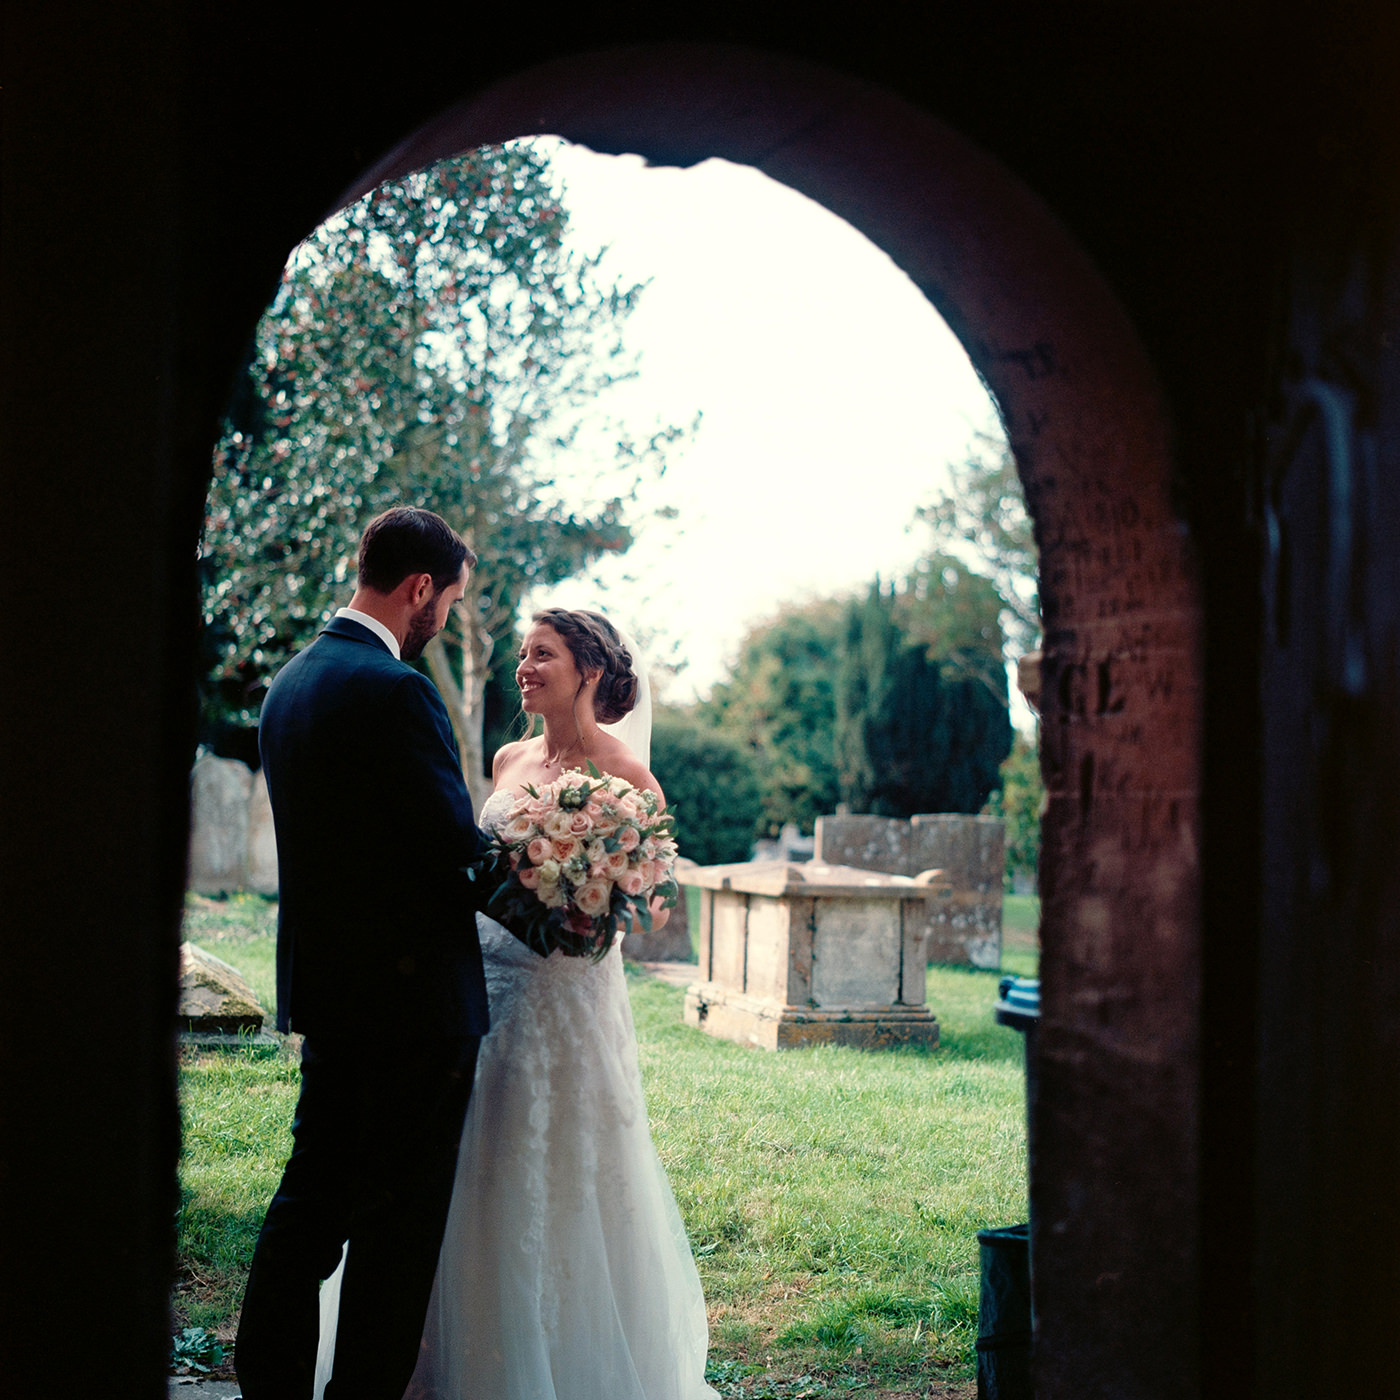 Kodak Film Hassleblad Wedding Photograph Reportage Photographer